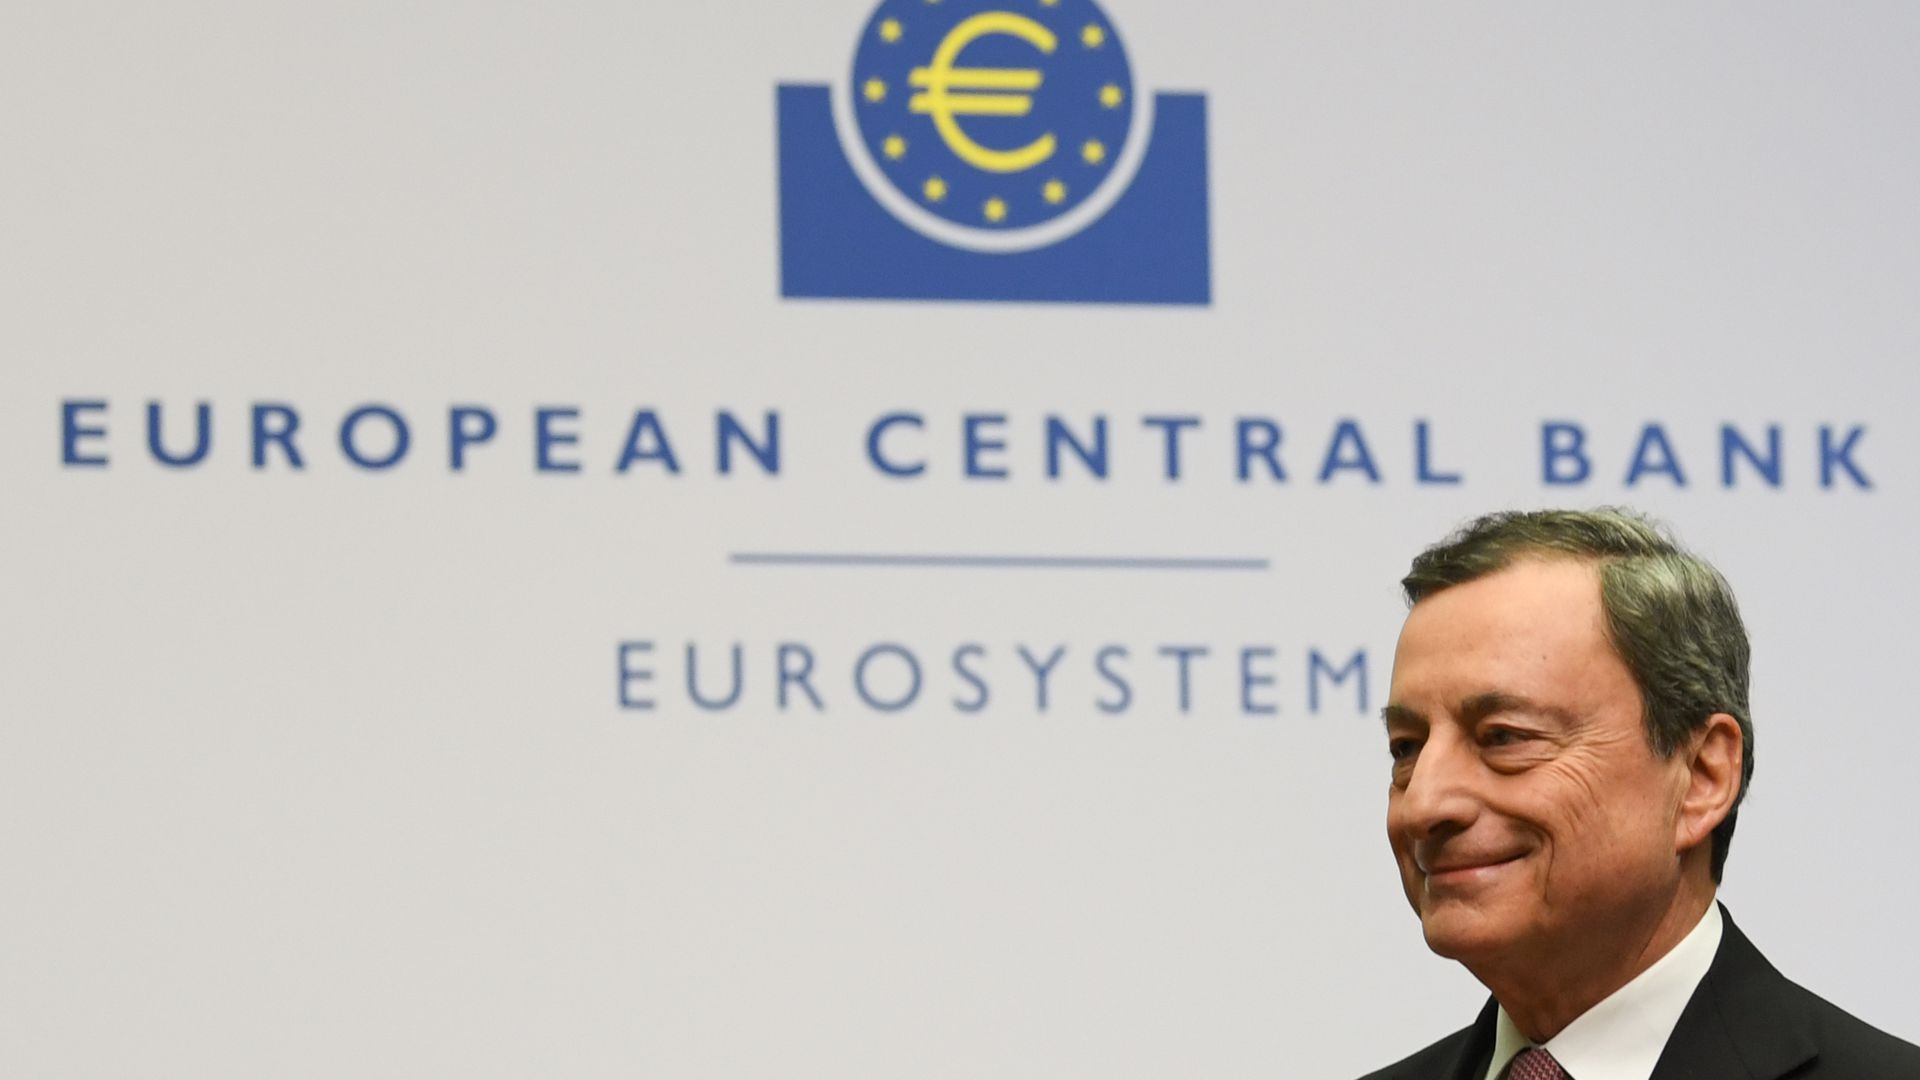 Mario Draghi, President of the European Central Bank (ECB) at a press conference at the ECB's headquarters